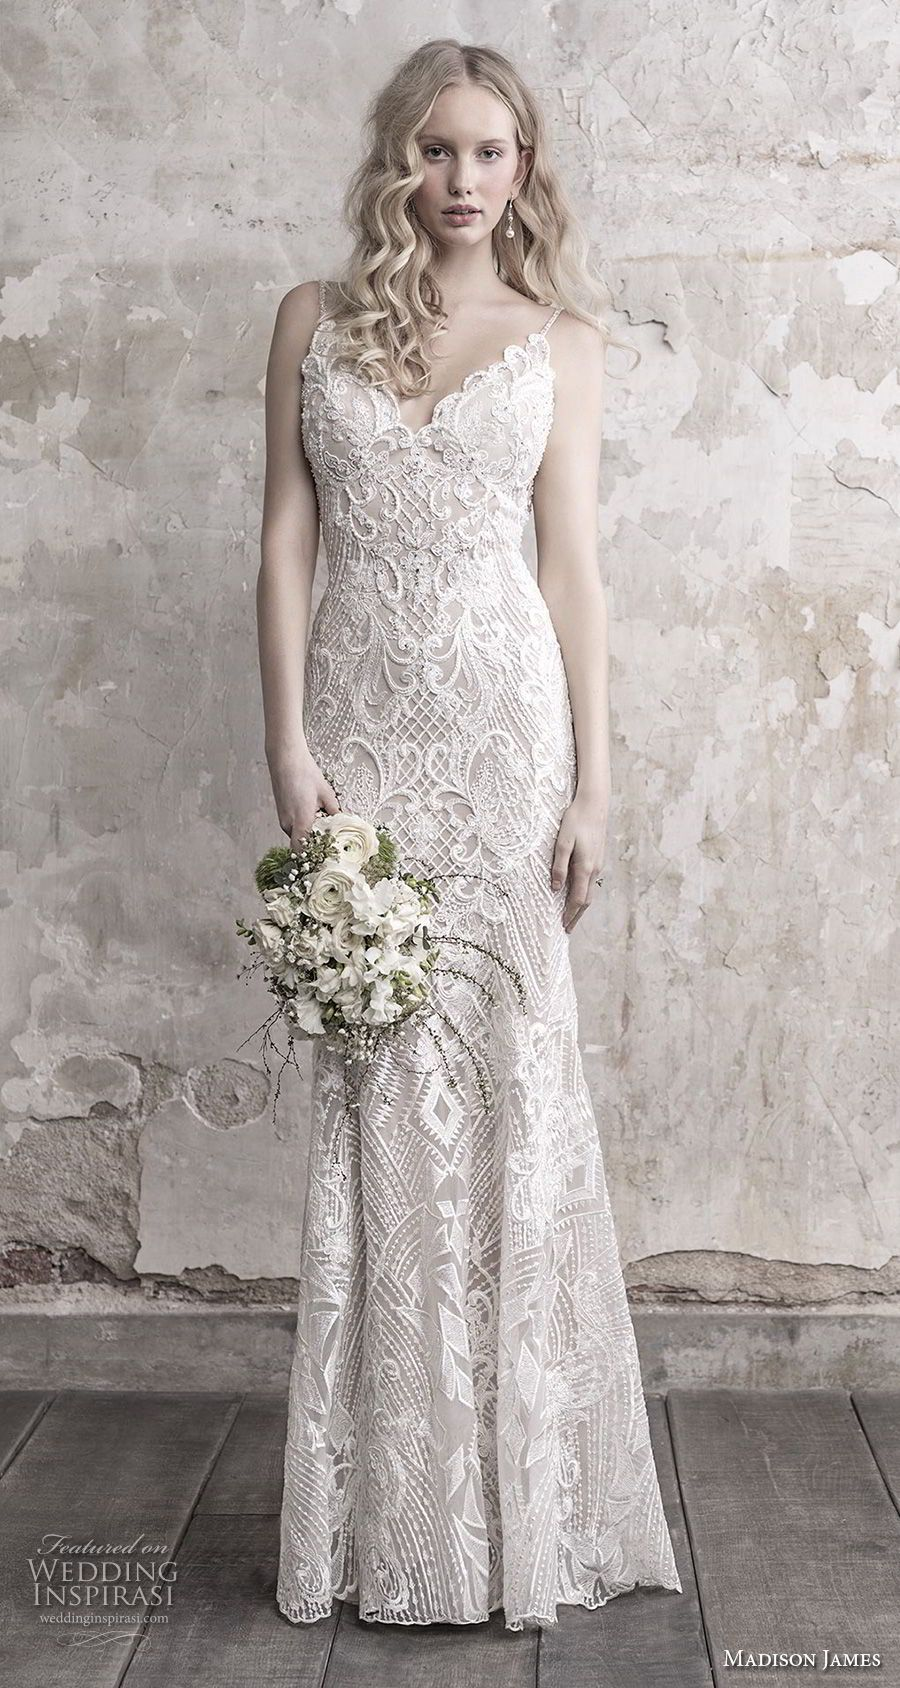 Madison james fall wedding dresses in white dress and